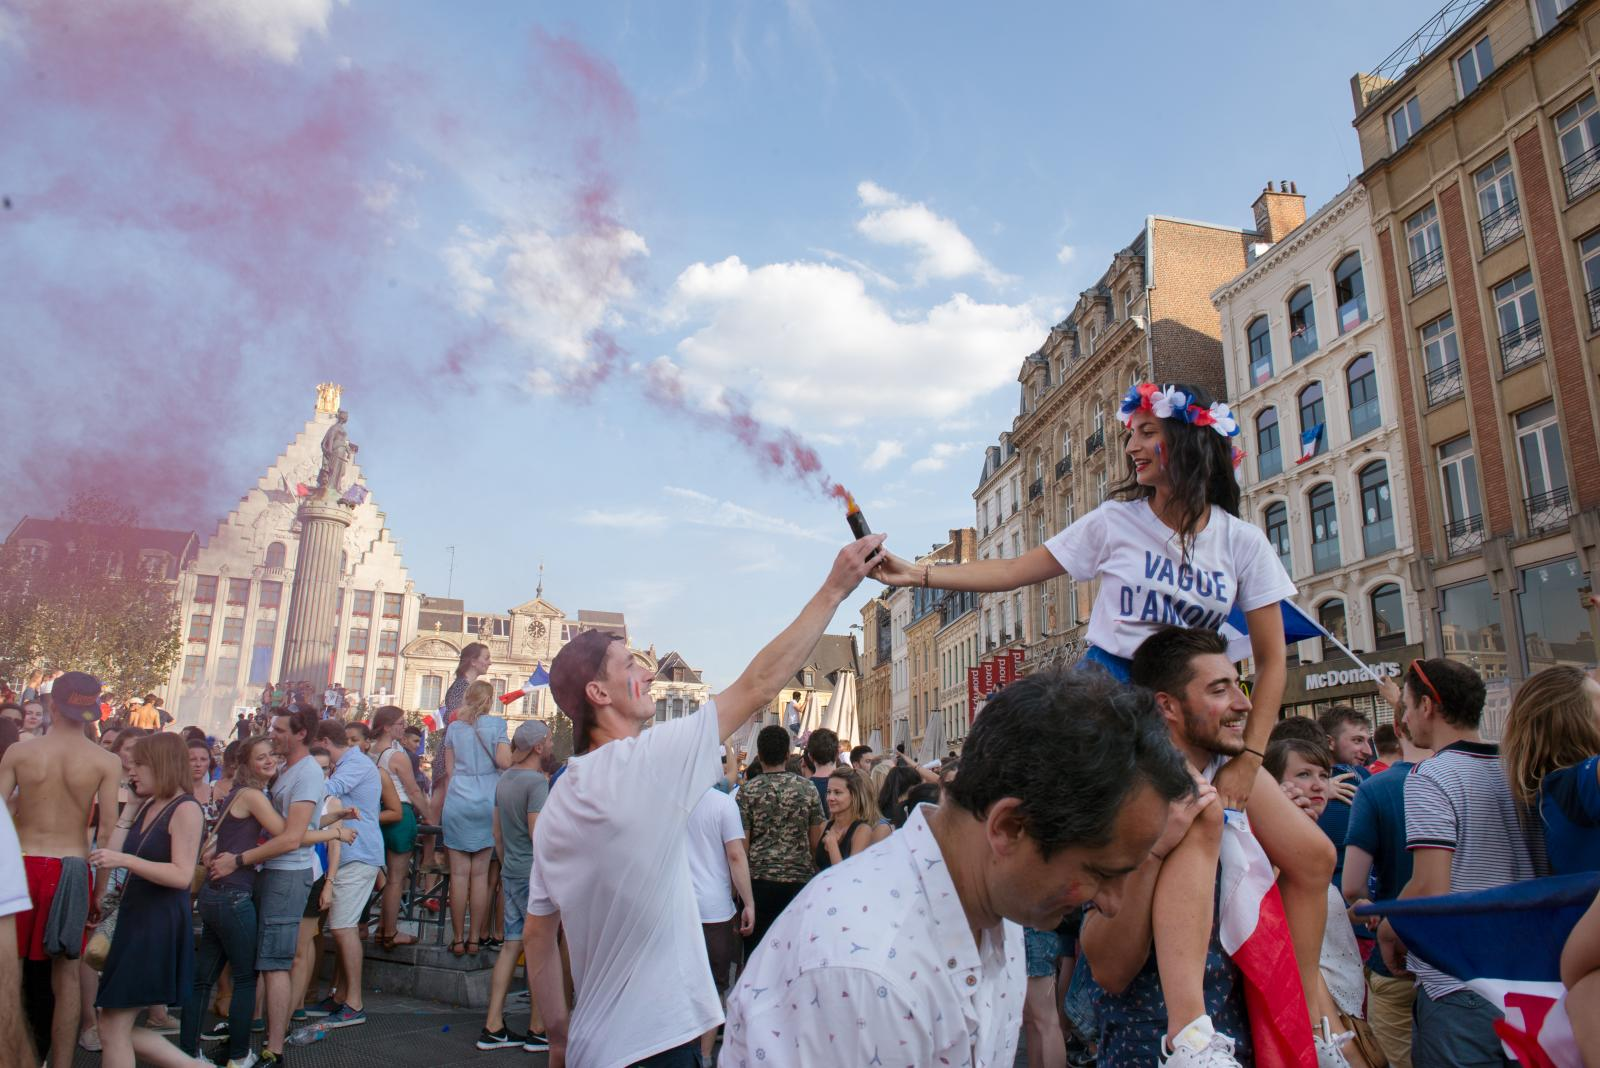 Soccer team fans celebrated the French soccer team victory during the Fifa World Cup 2018. Lille, France - July 15, 2018.